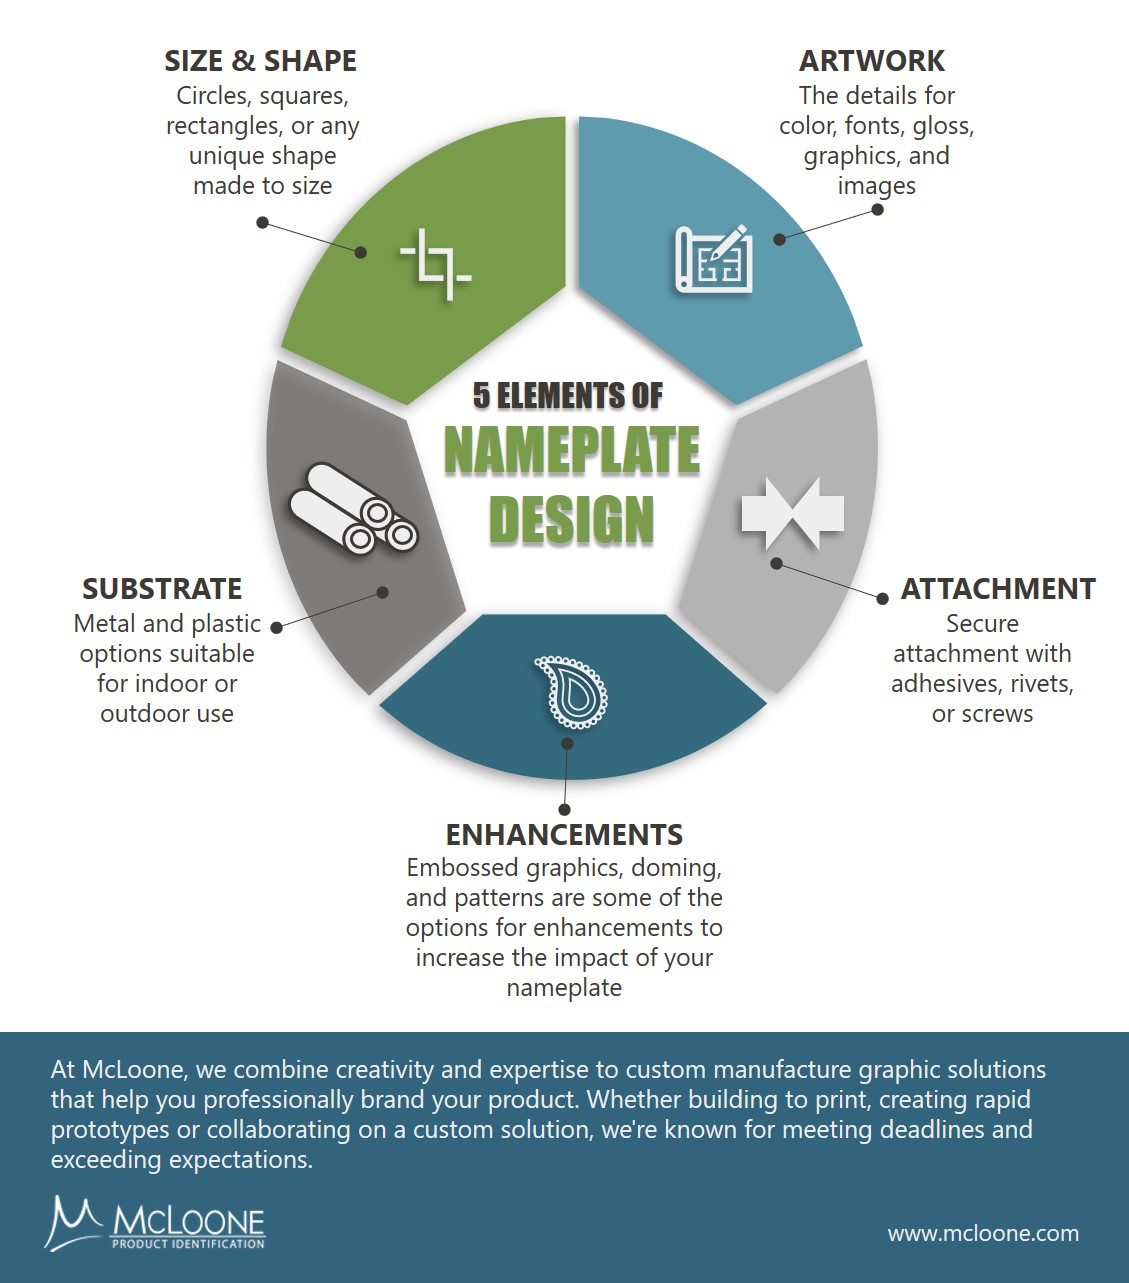 5 Elements of Nameplate Design Infographic 051421